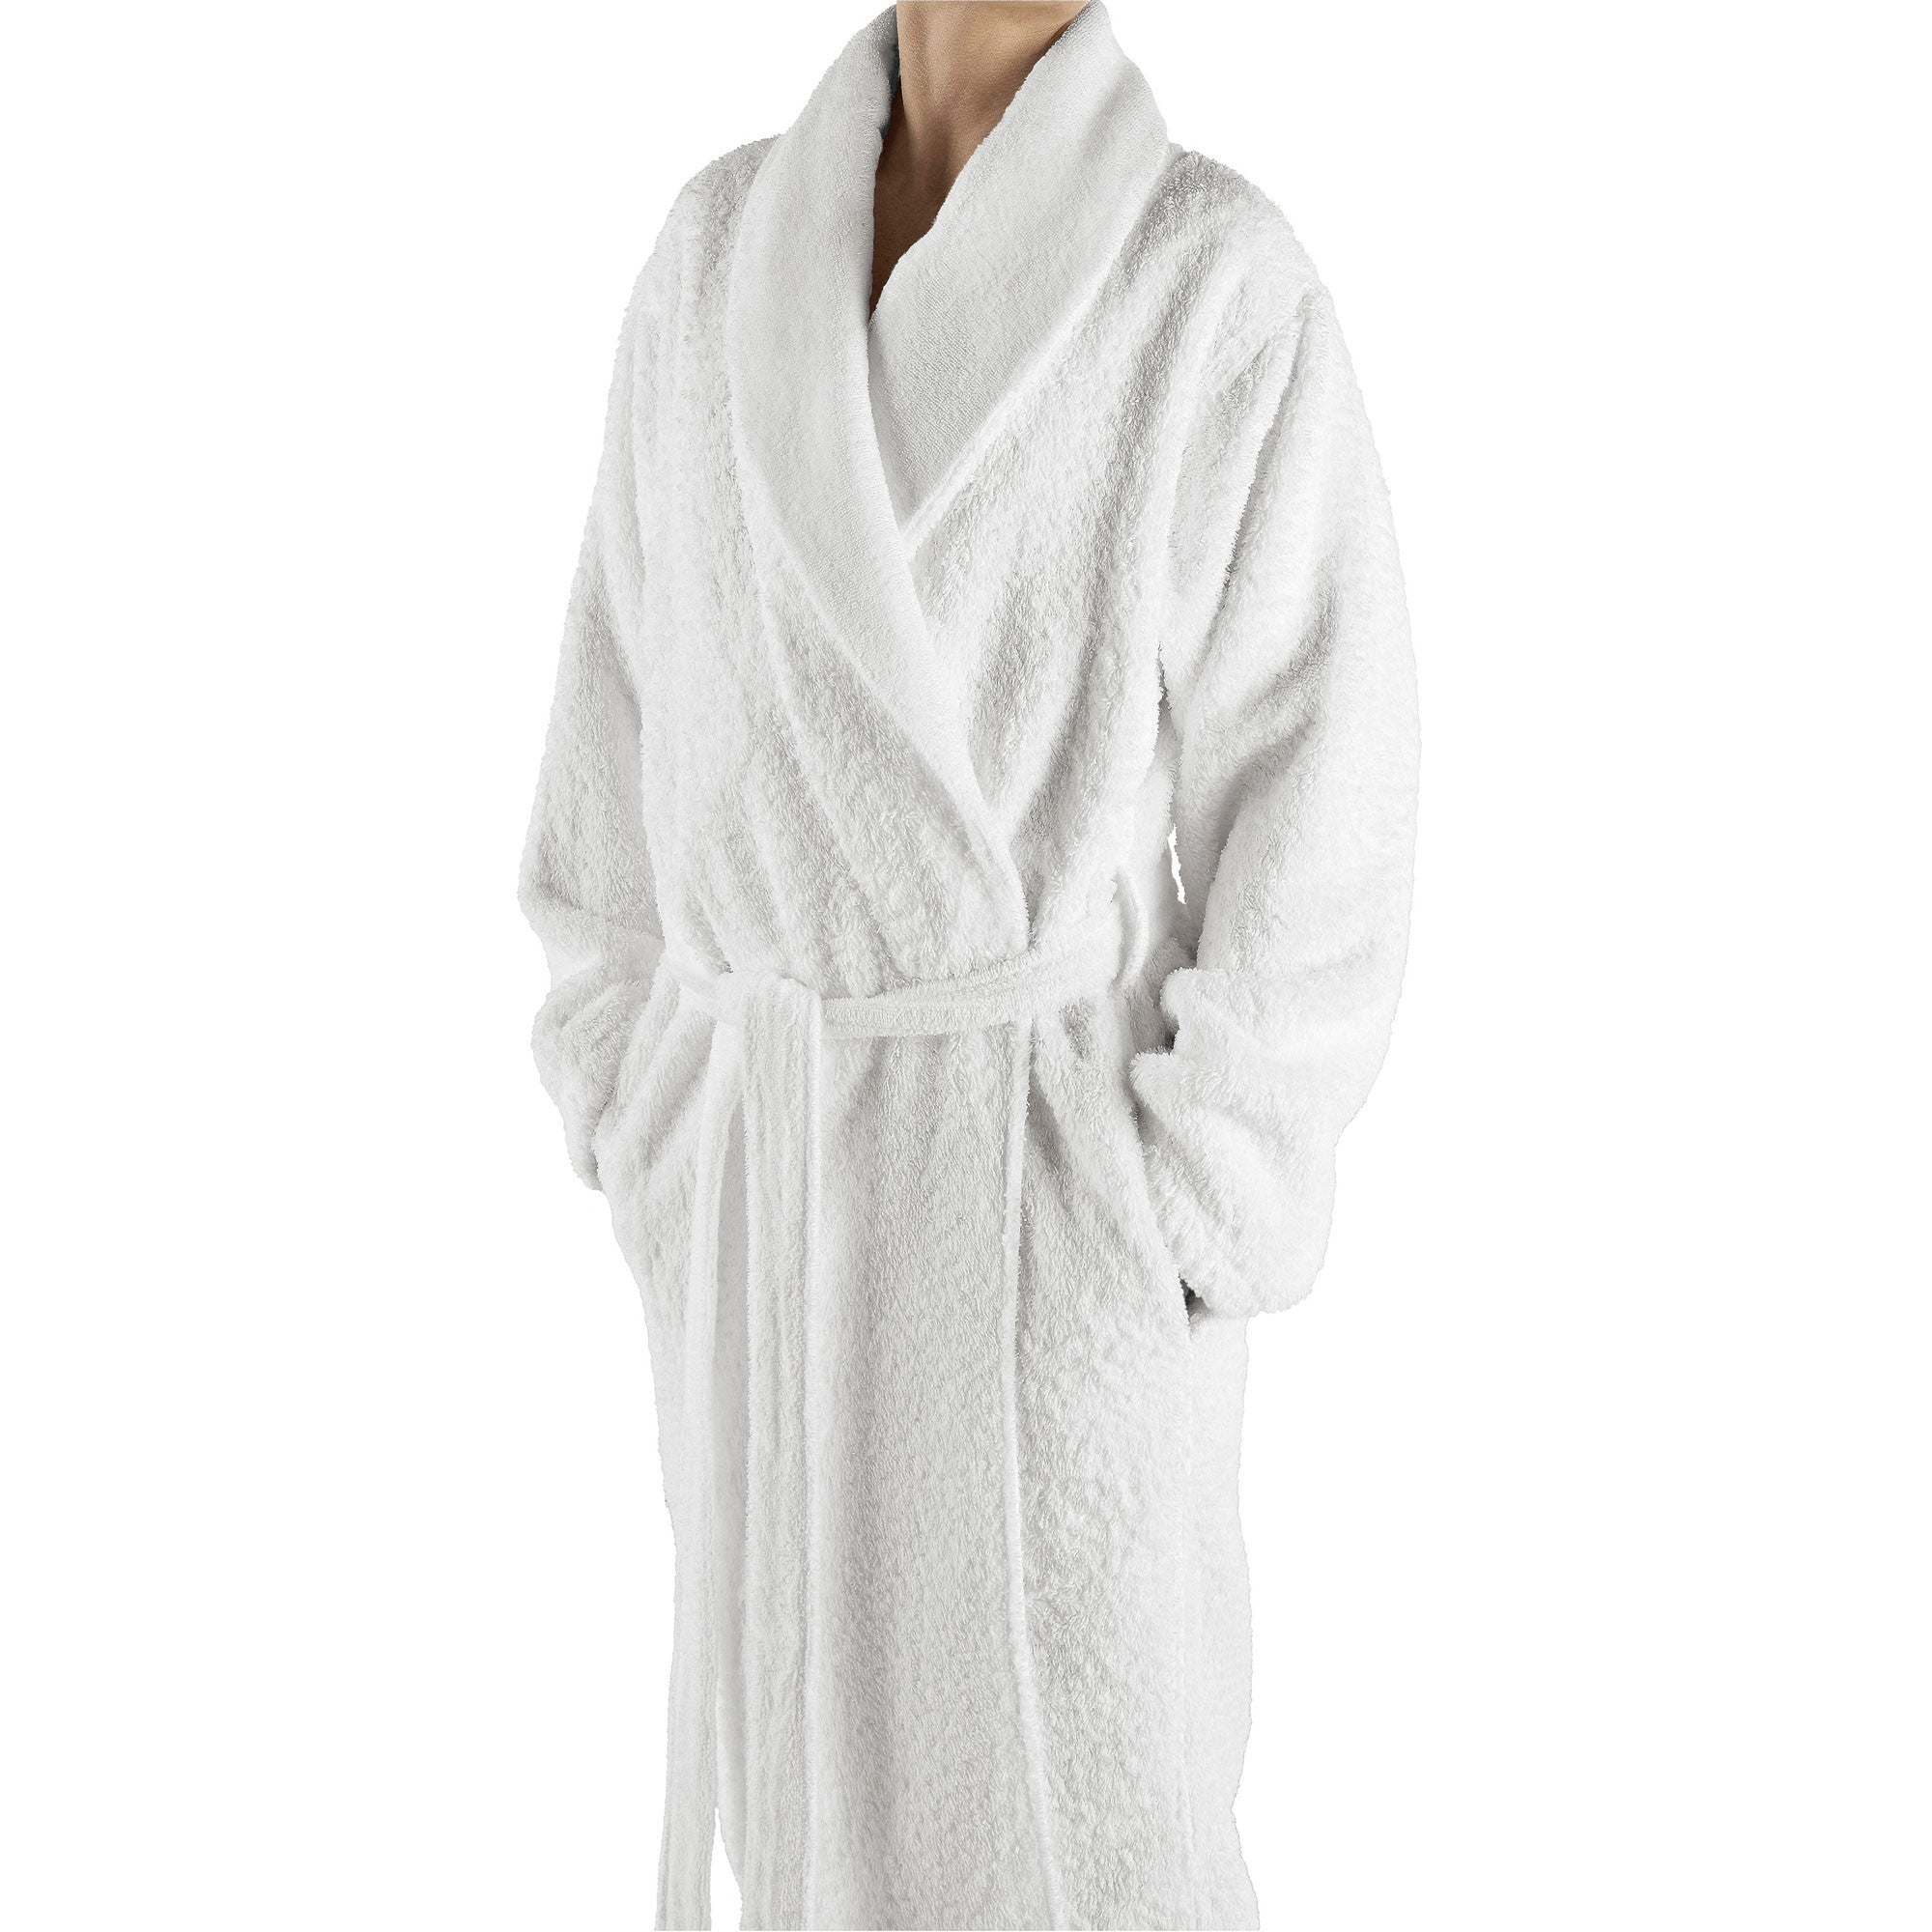 Abyss Super Pile Bath Robes White 100 Flandb Com